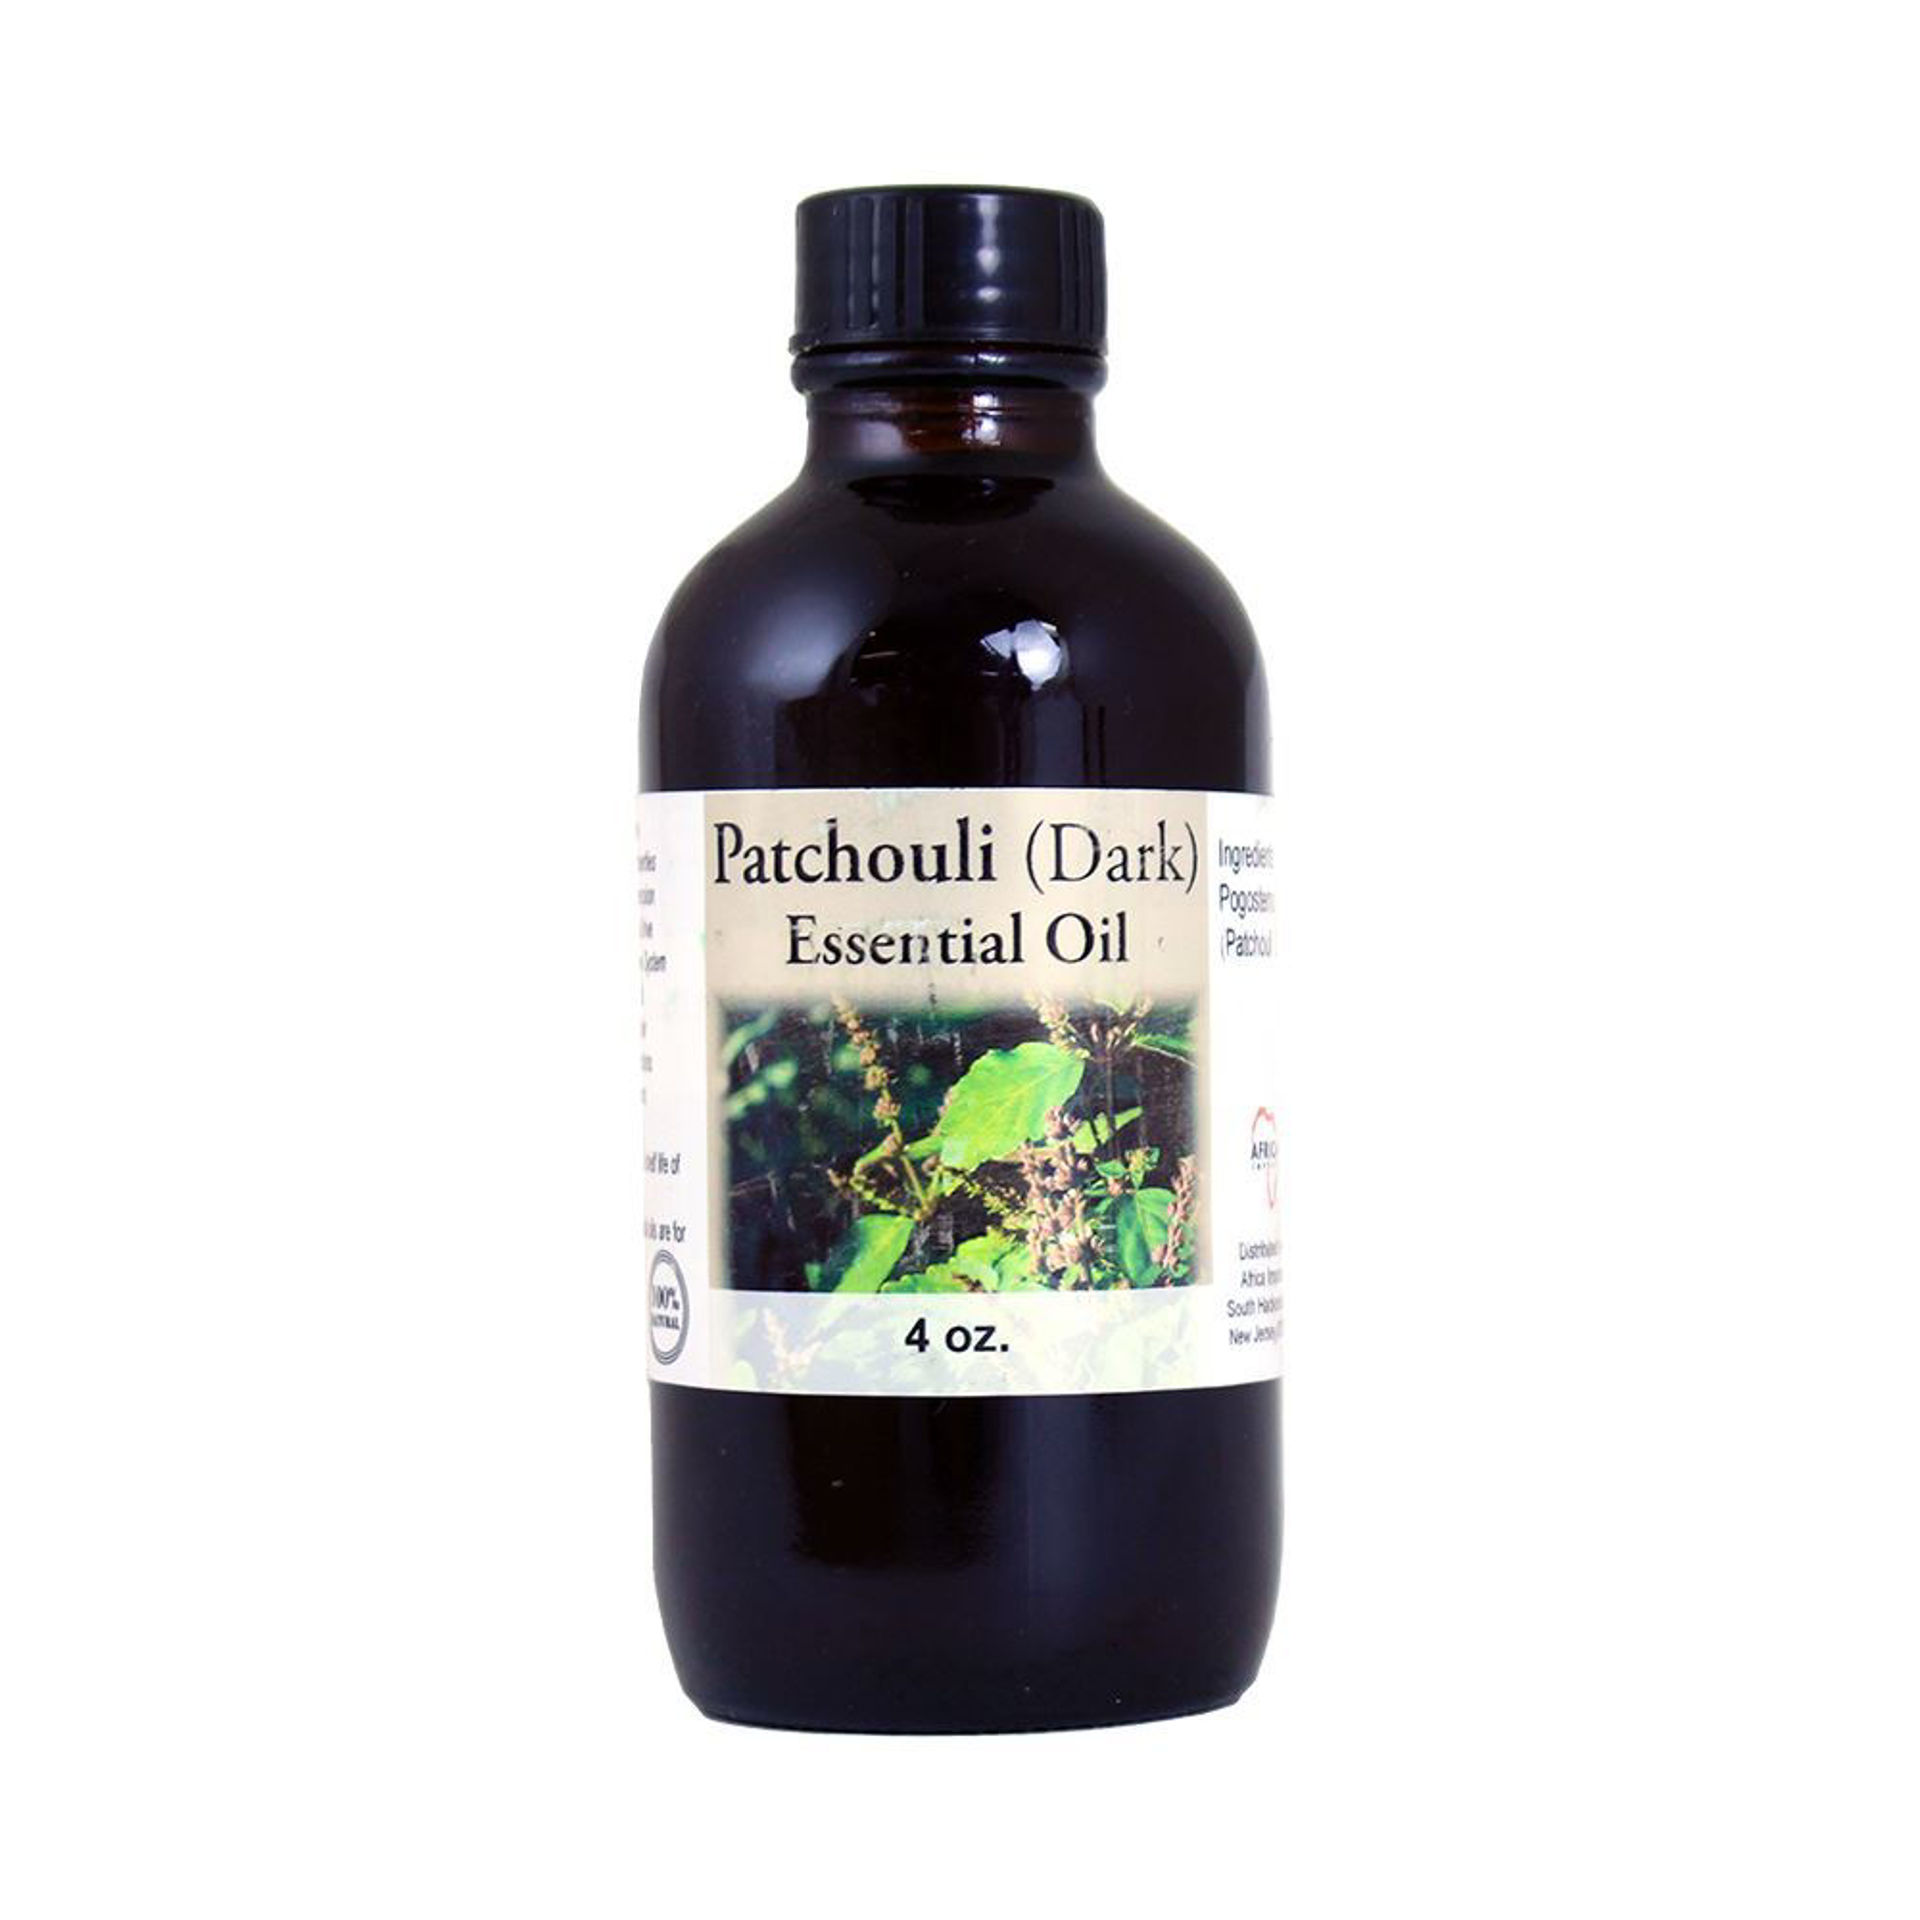 Picture of Patchouli (Dark) Essential Oil - 4 oz.